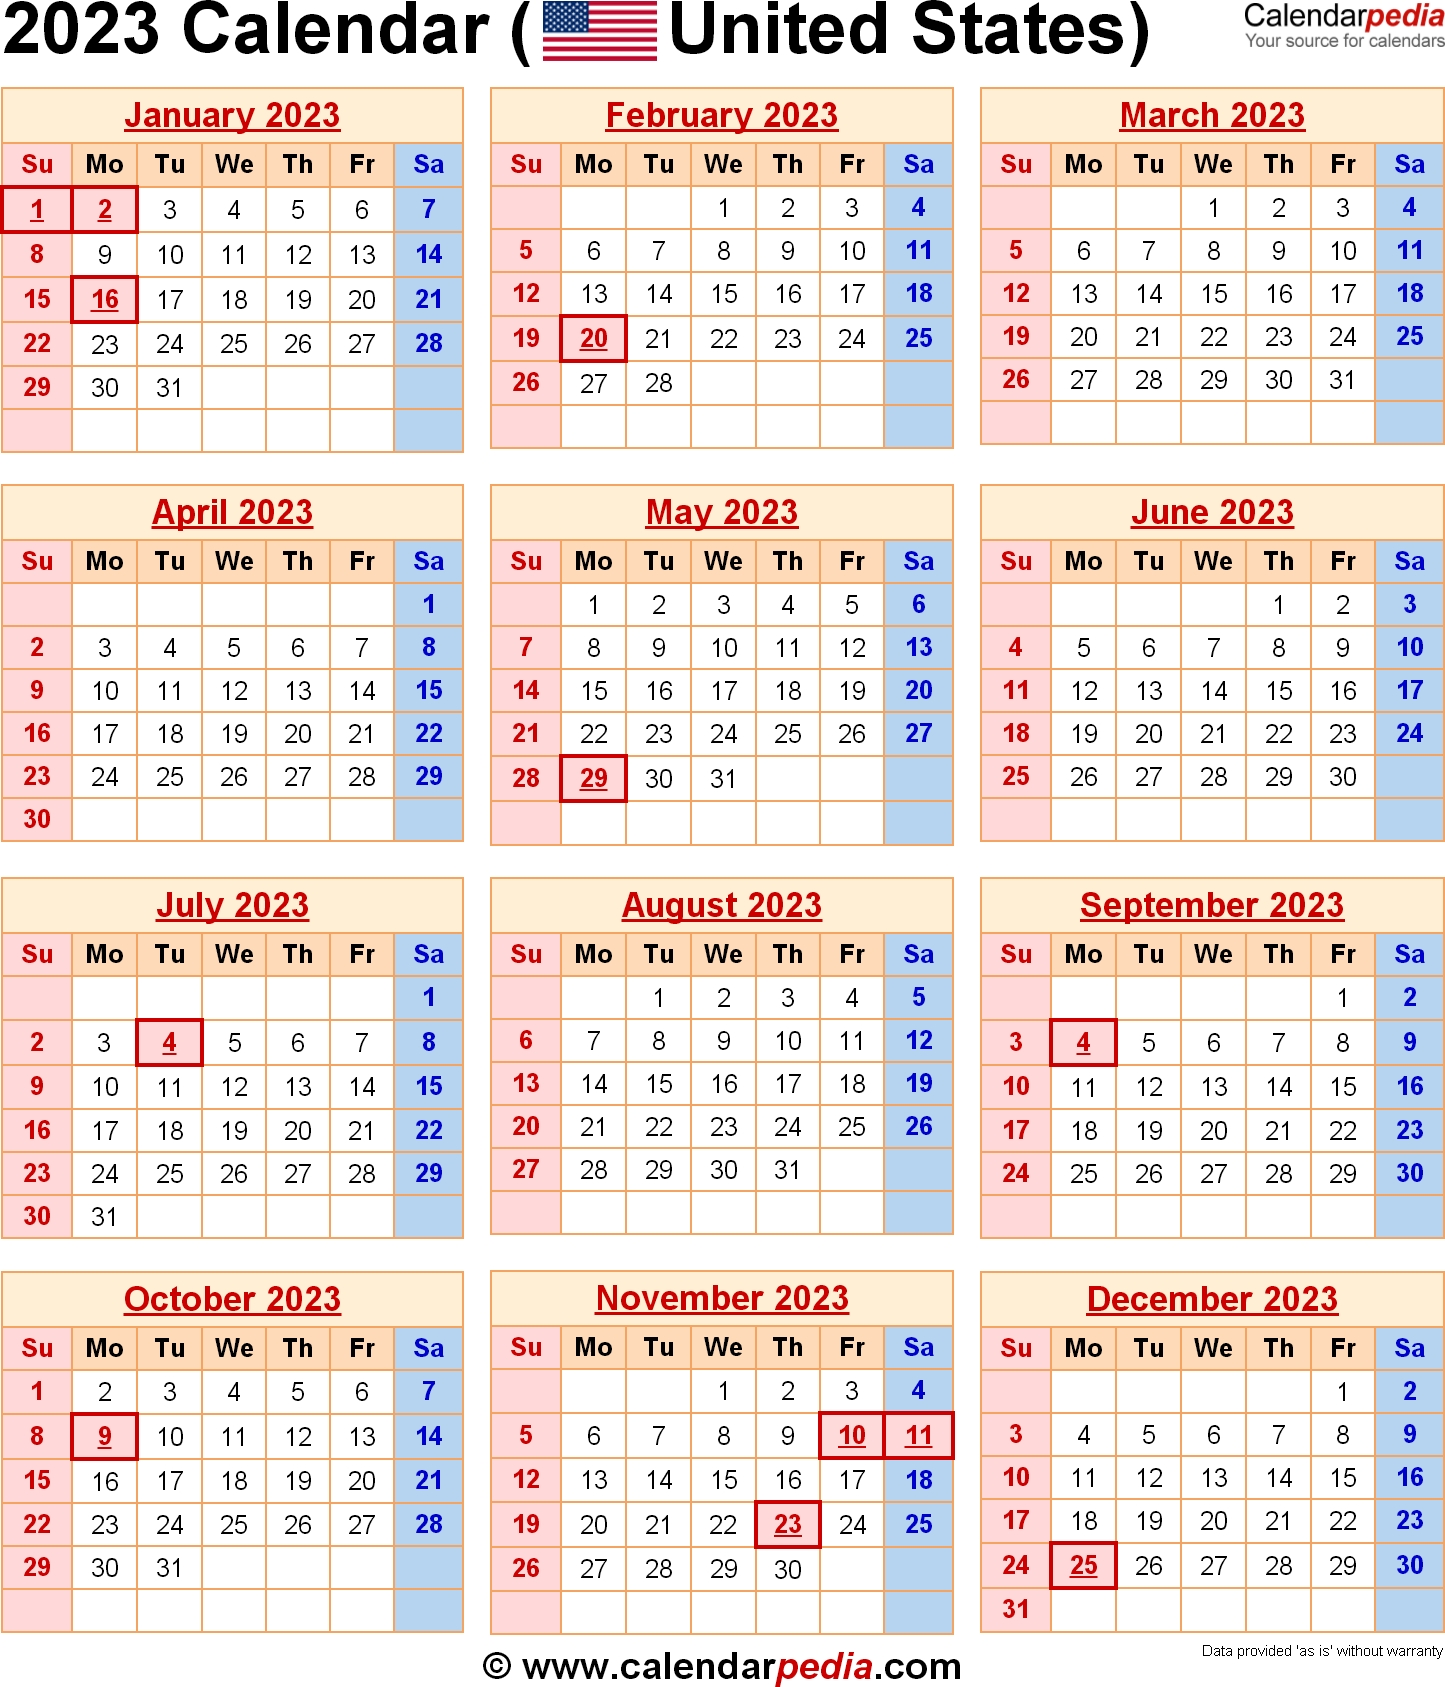 Catch Government 2023 Fiscal Calendar